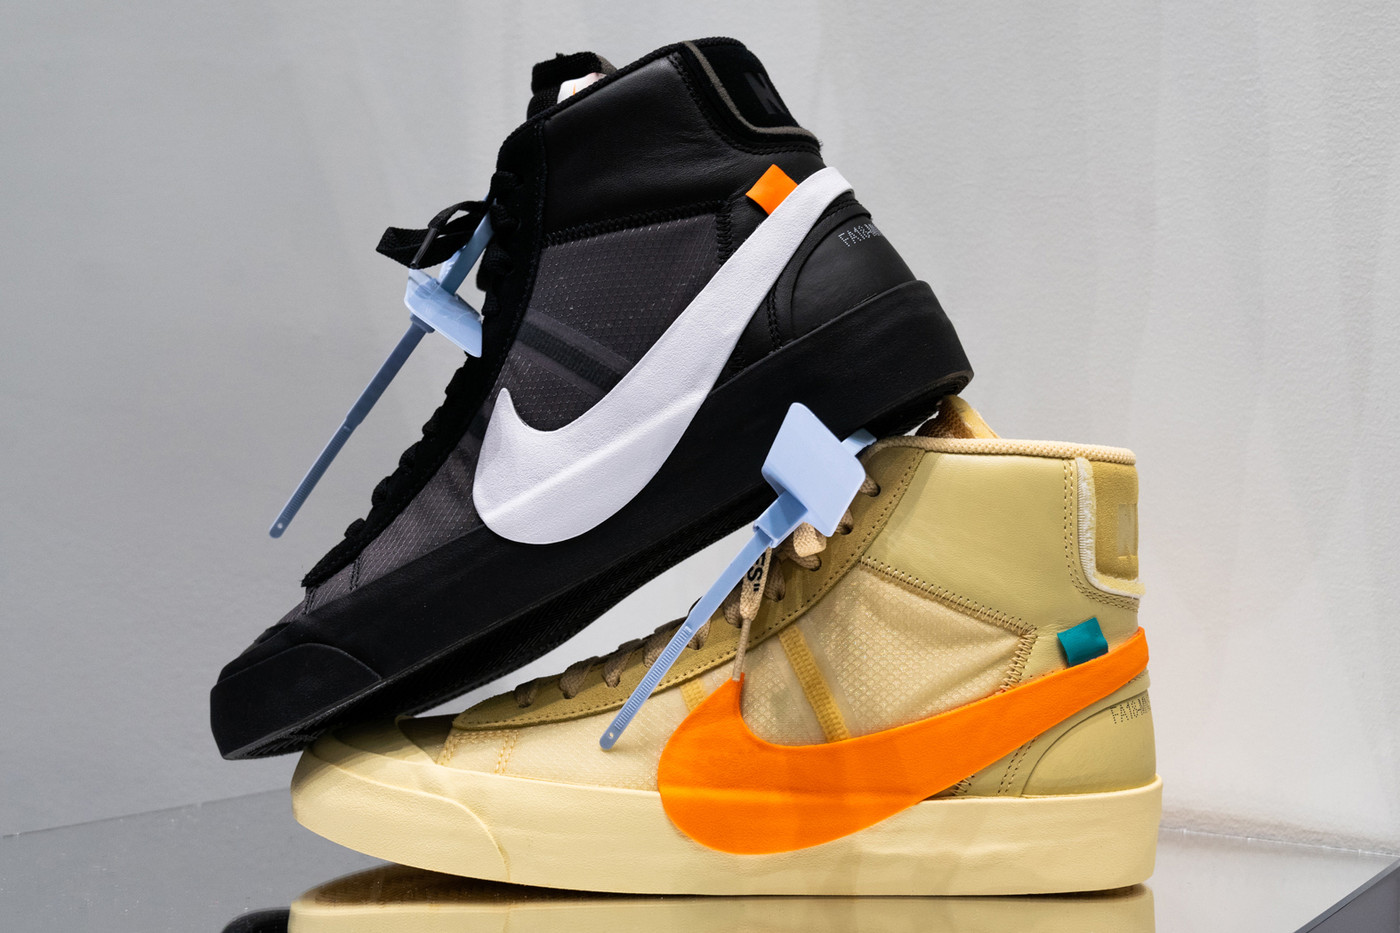 Off-White x Nike Blazer Spooky Pack Sneakers Shoes Trainers Kicks Footwear Cop Purchase Buy Release Date Details The Ten Virgil Abloh Halloween Orange Black